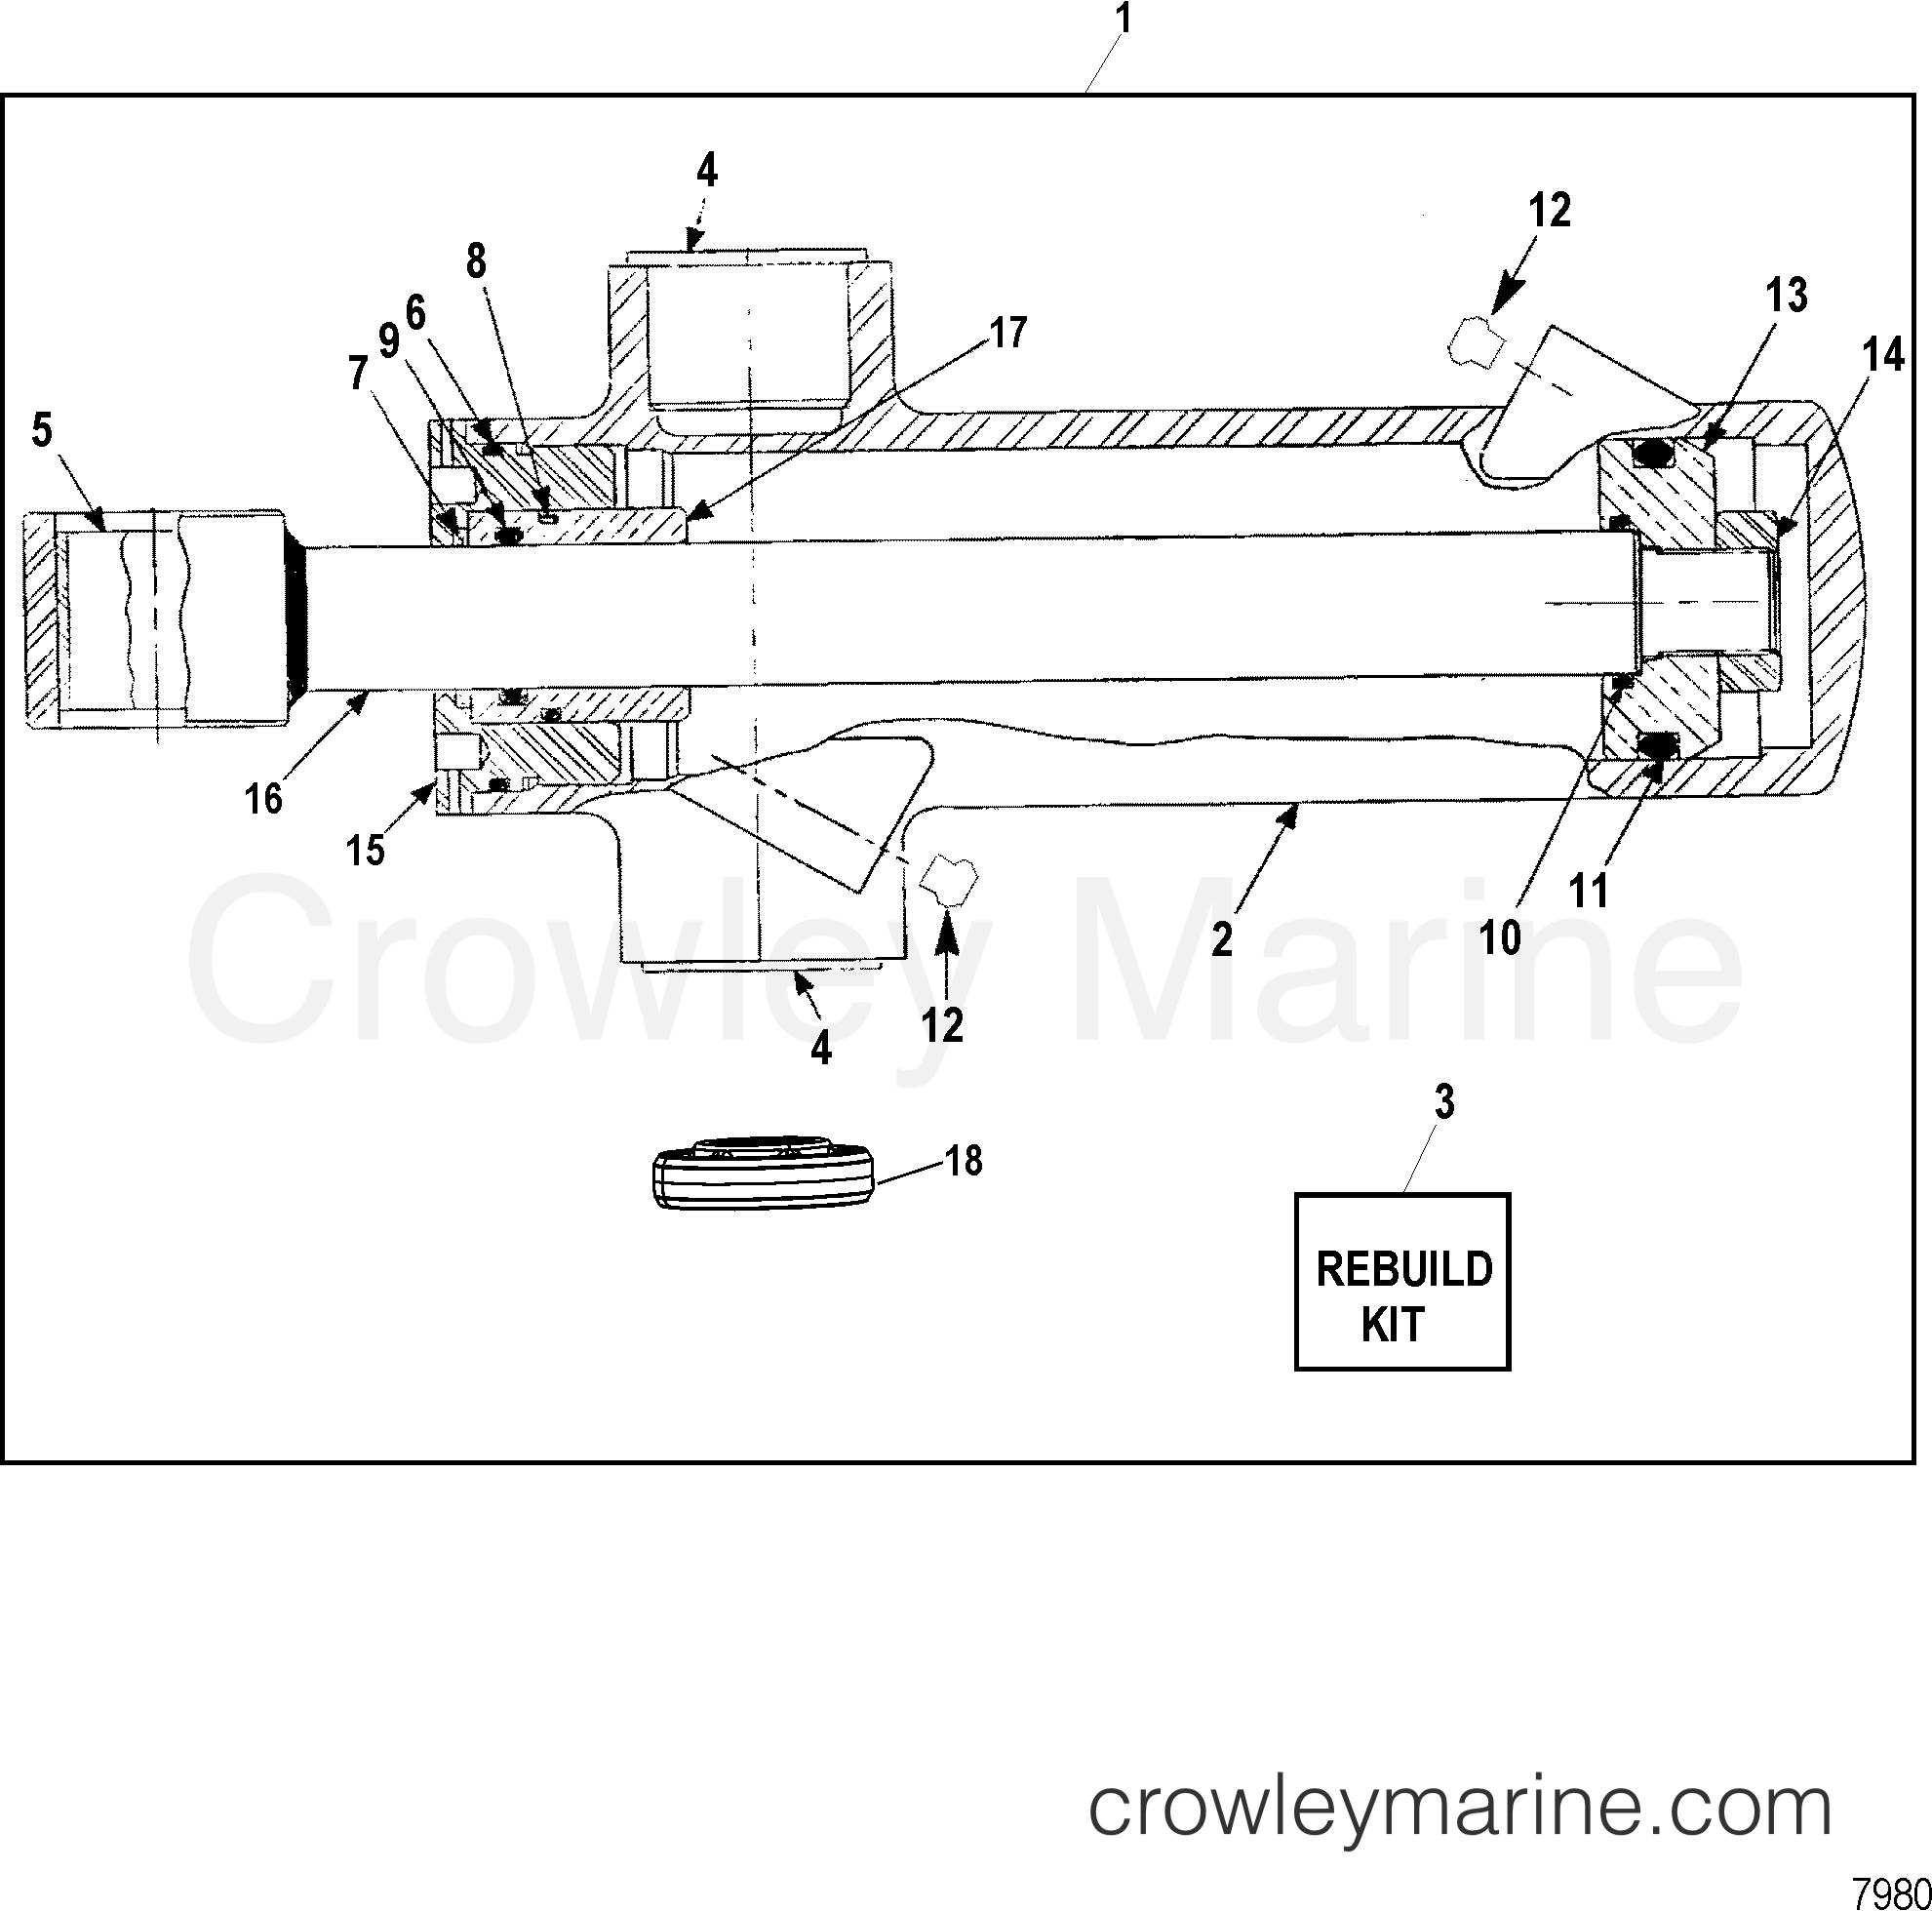 TRIM CYLINDER ASSEMBLY(WITH TRIM SENSOR PLATE) - 1991